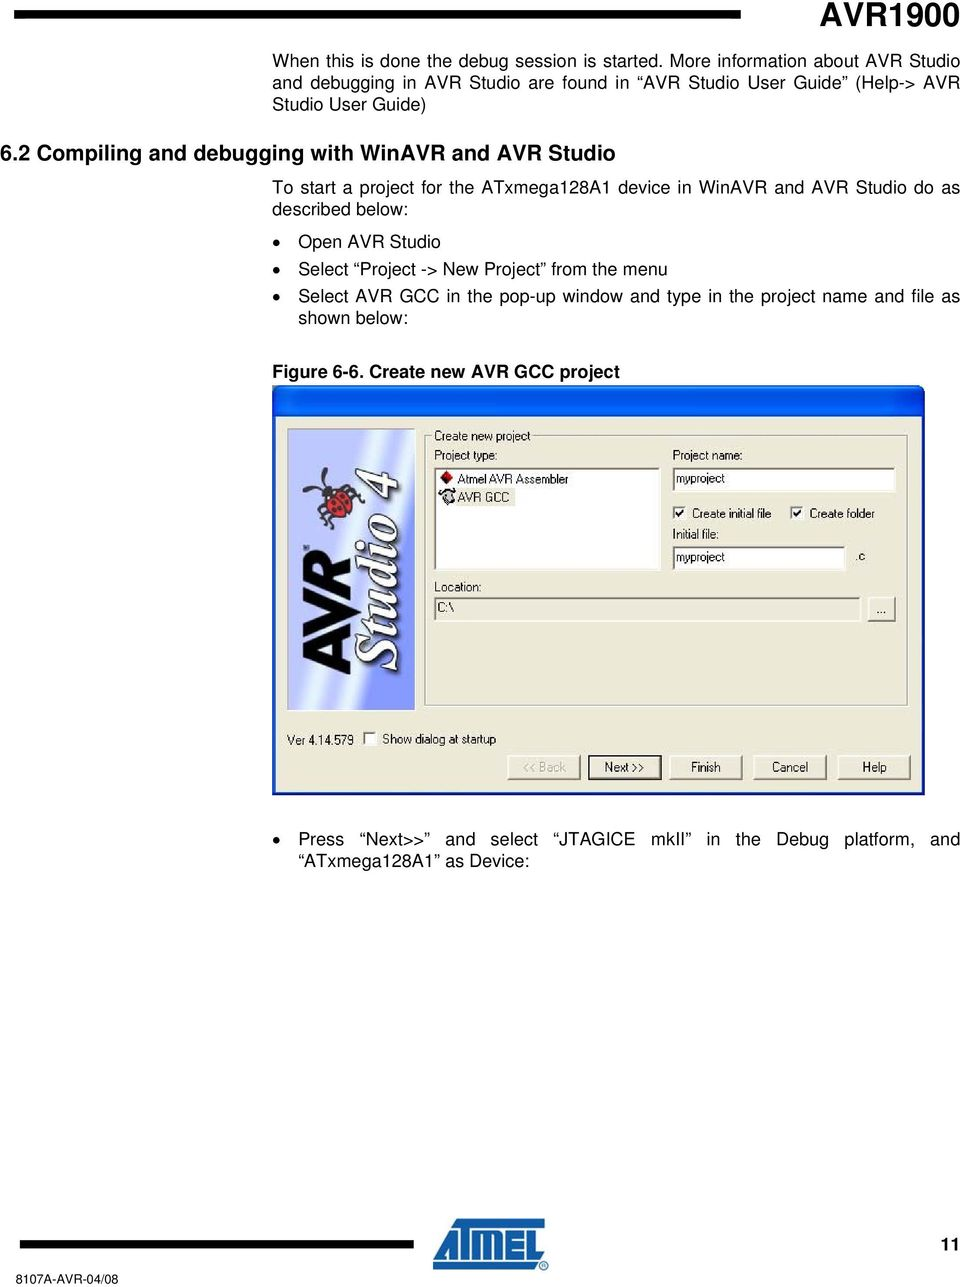 2 Compiling and debugging with WinAVR and AVR Studio To start a project for the ATxmega128A1 device in WinAVR and AVR Studio do as described below: Open